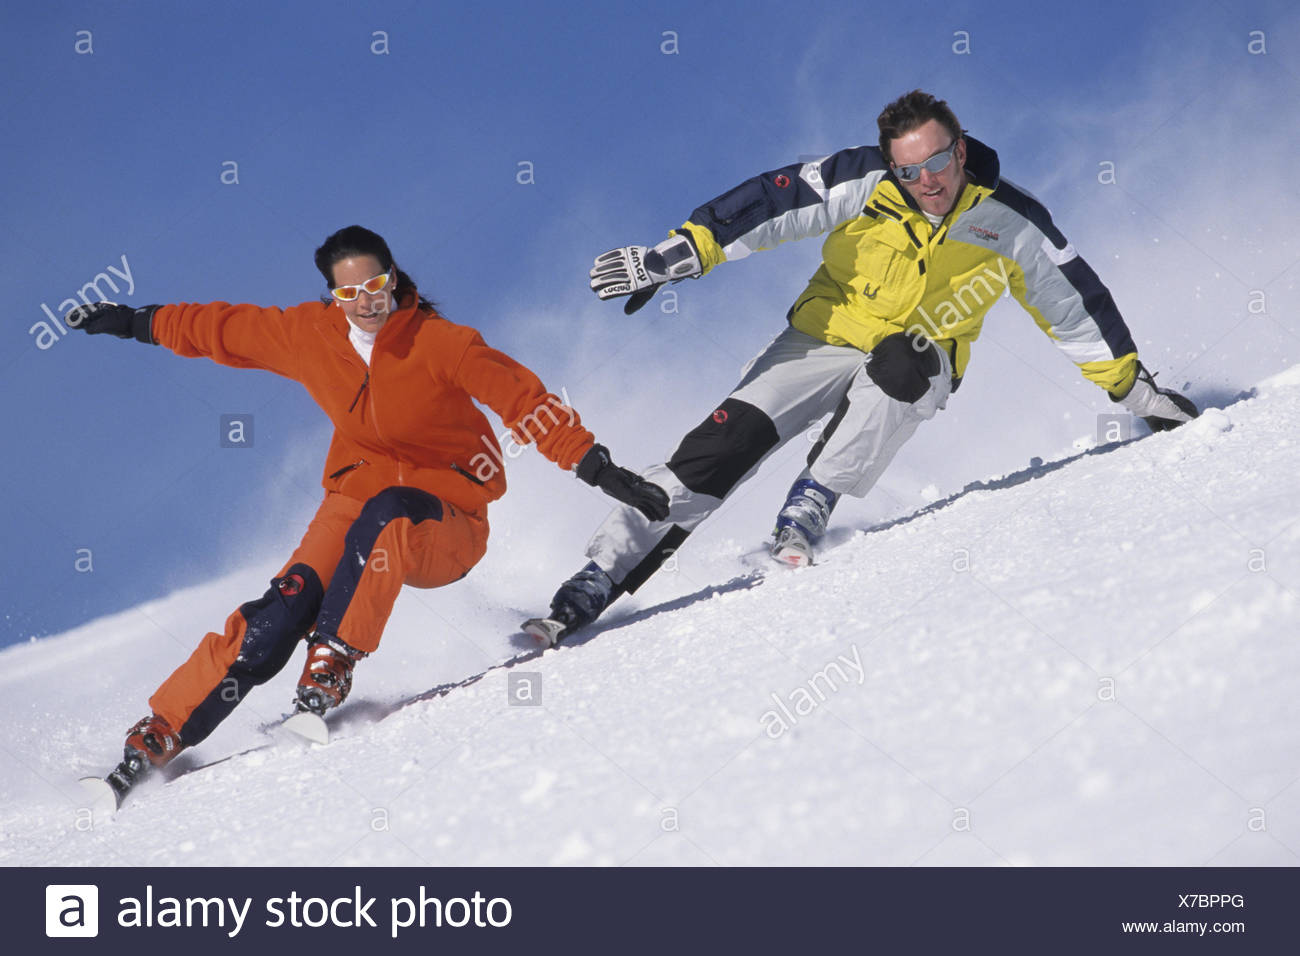 Two freerider without ski poles side by side on the run - Stock Image